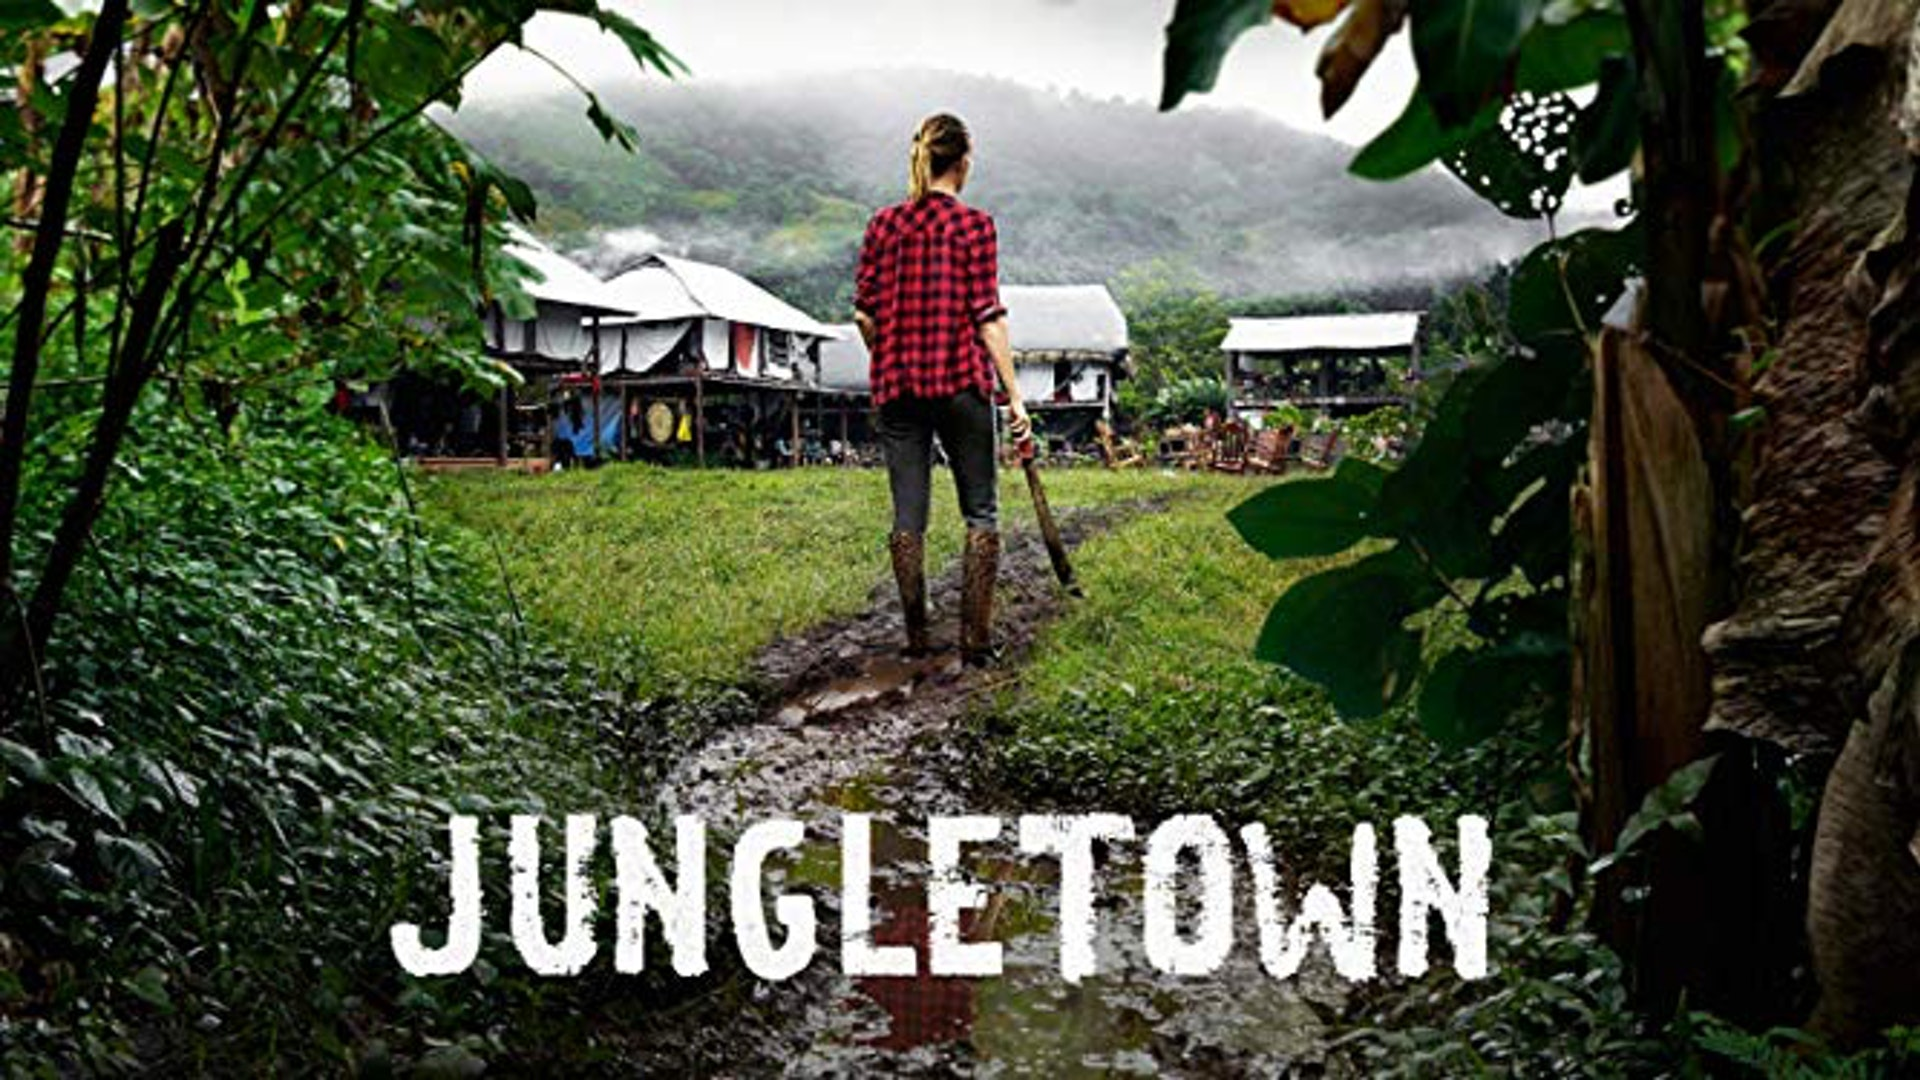 JUNGLETOWN - VICELAND - Producers: Ian Midgley and Brooke Mueller